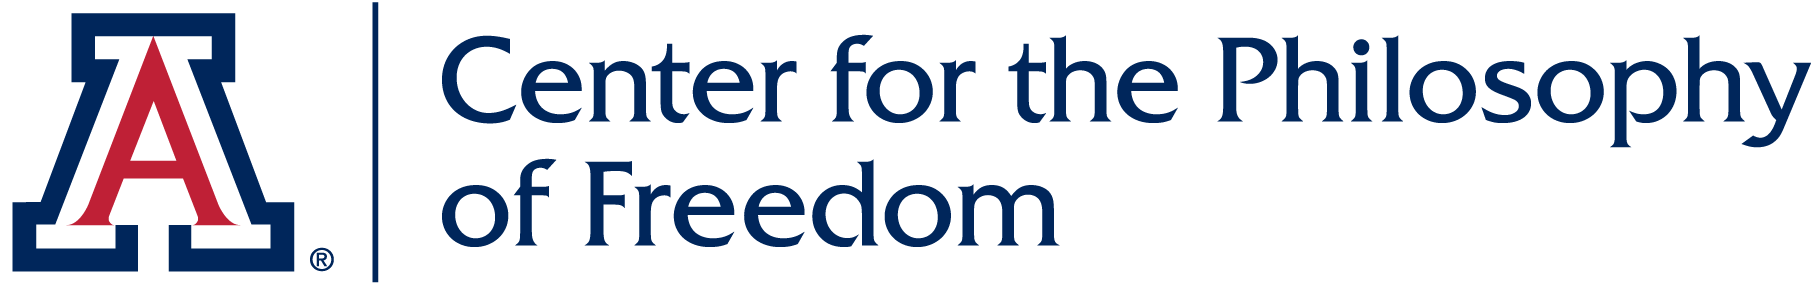 Center for the Philosophy of Freedom | Home